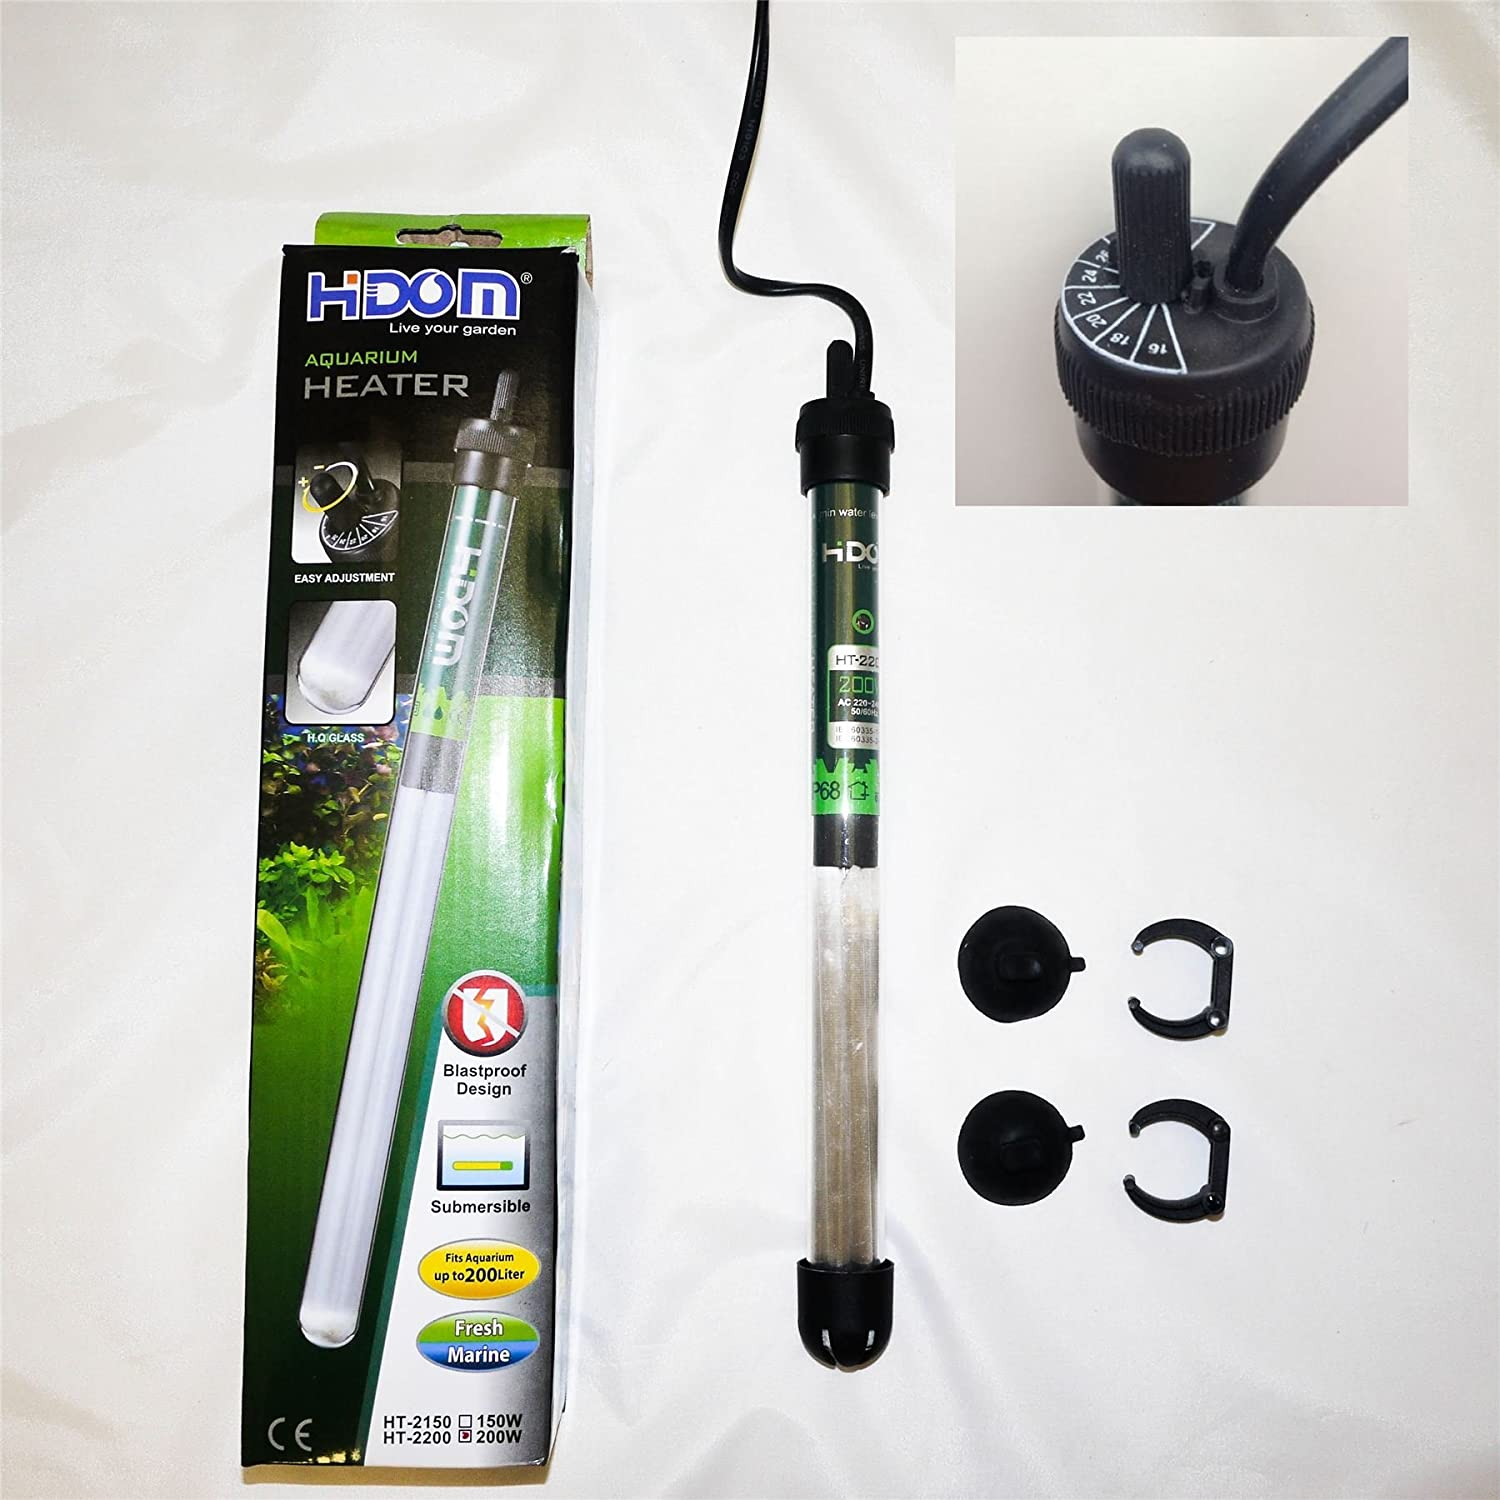 Hidom HT 2050 Submersible Blastproof Aquarium Heater 50w with FREE